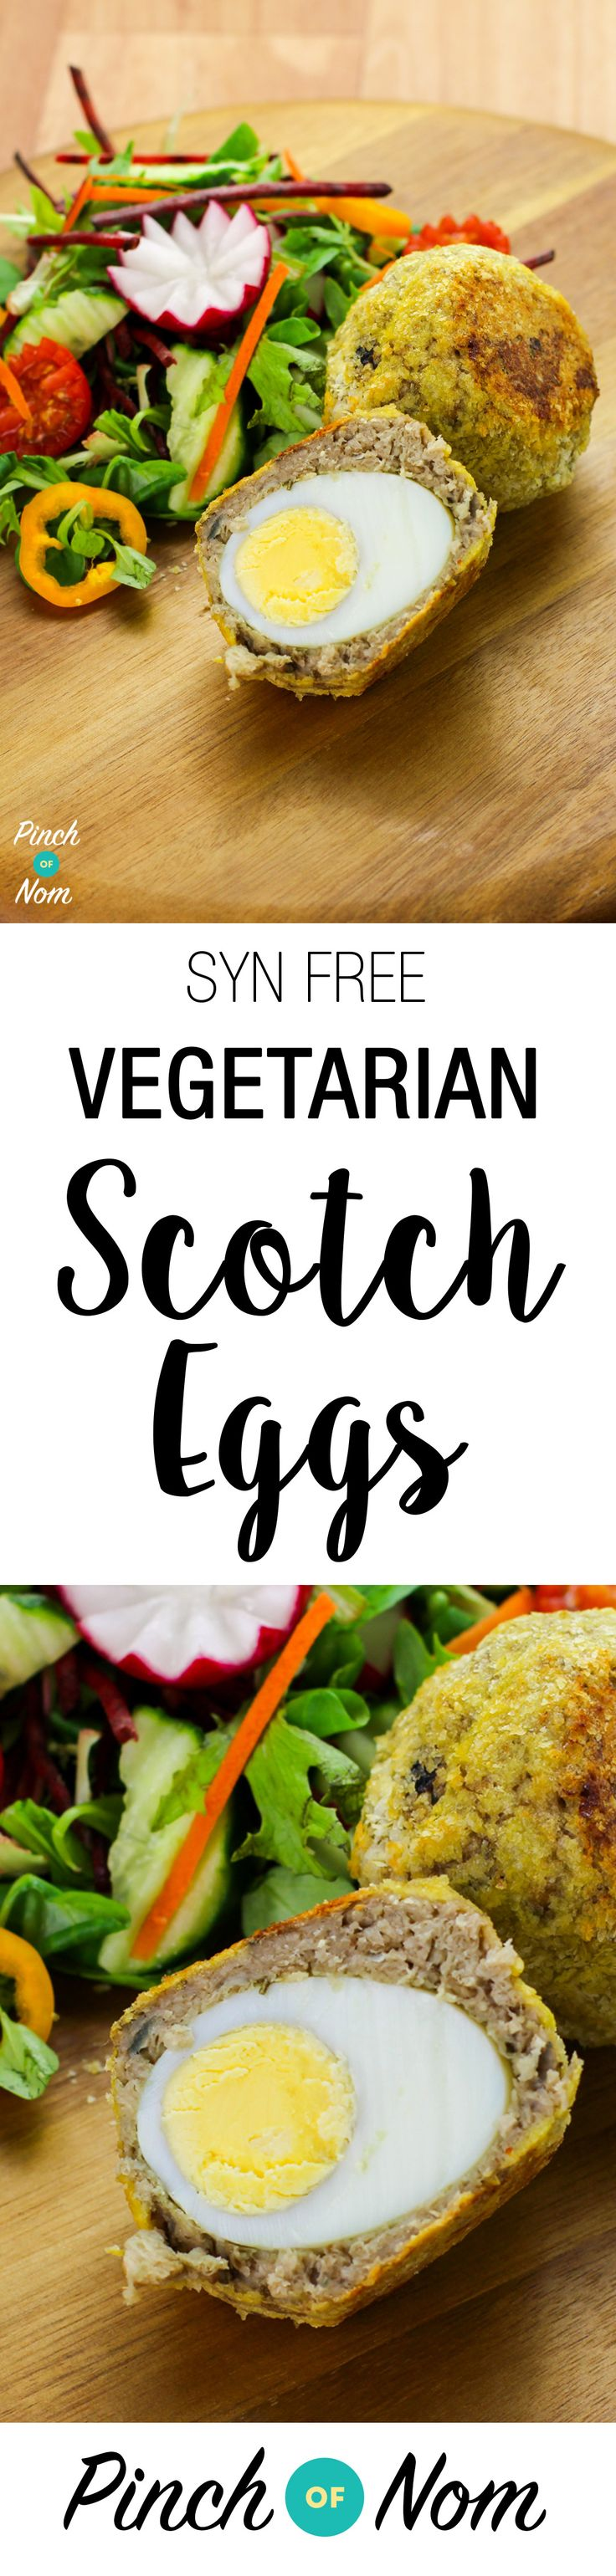 Syn Free Vegetarian Scotch Eggs | Slimming World - http://pinchofnom.com/recipes/syn-free-vegetarian-scotch-eggs/